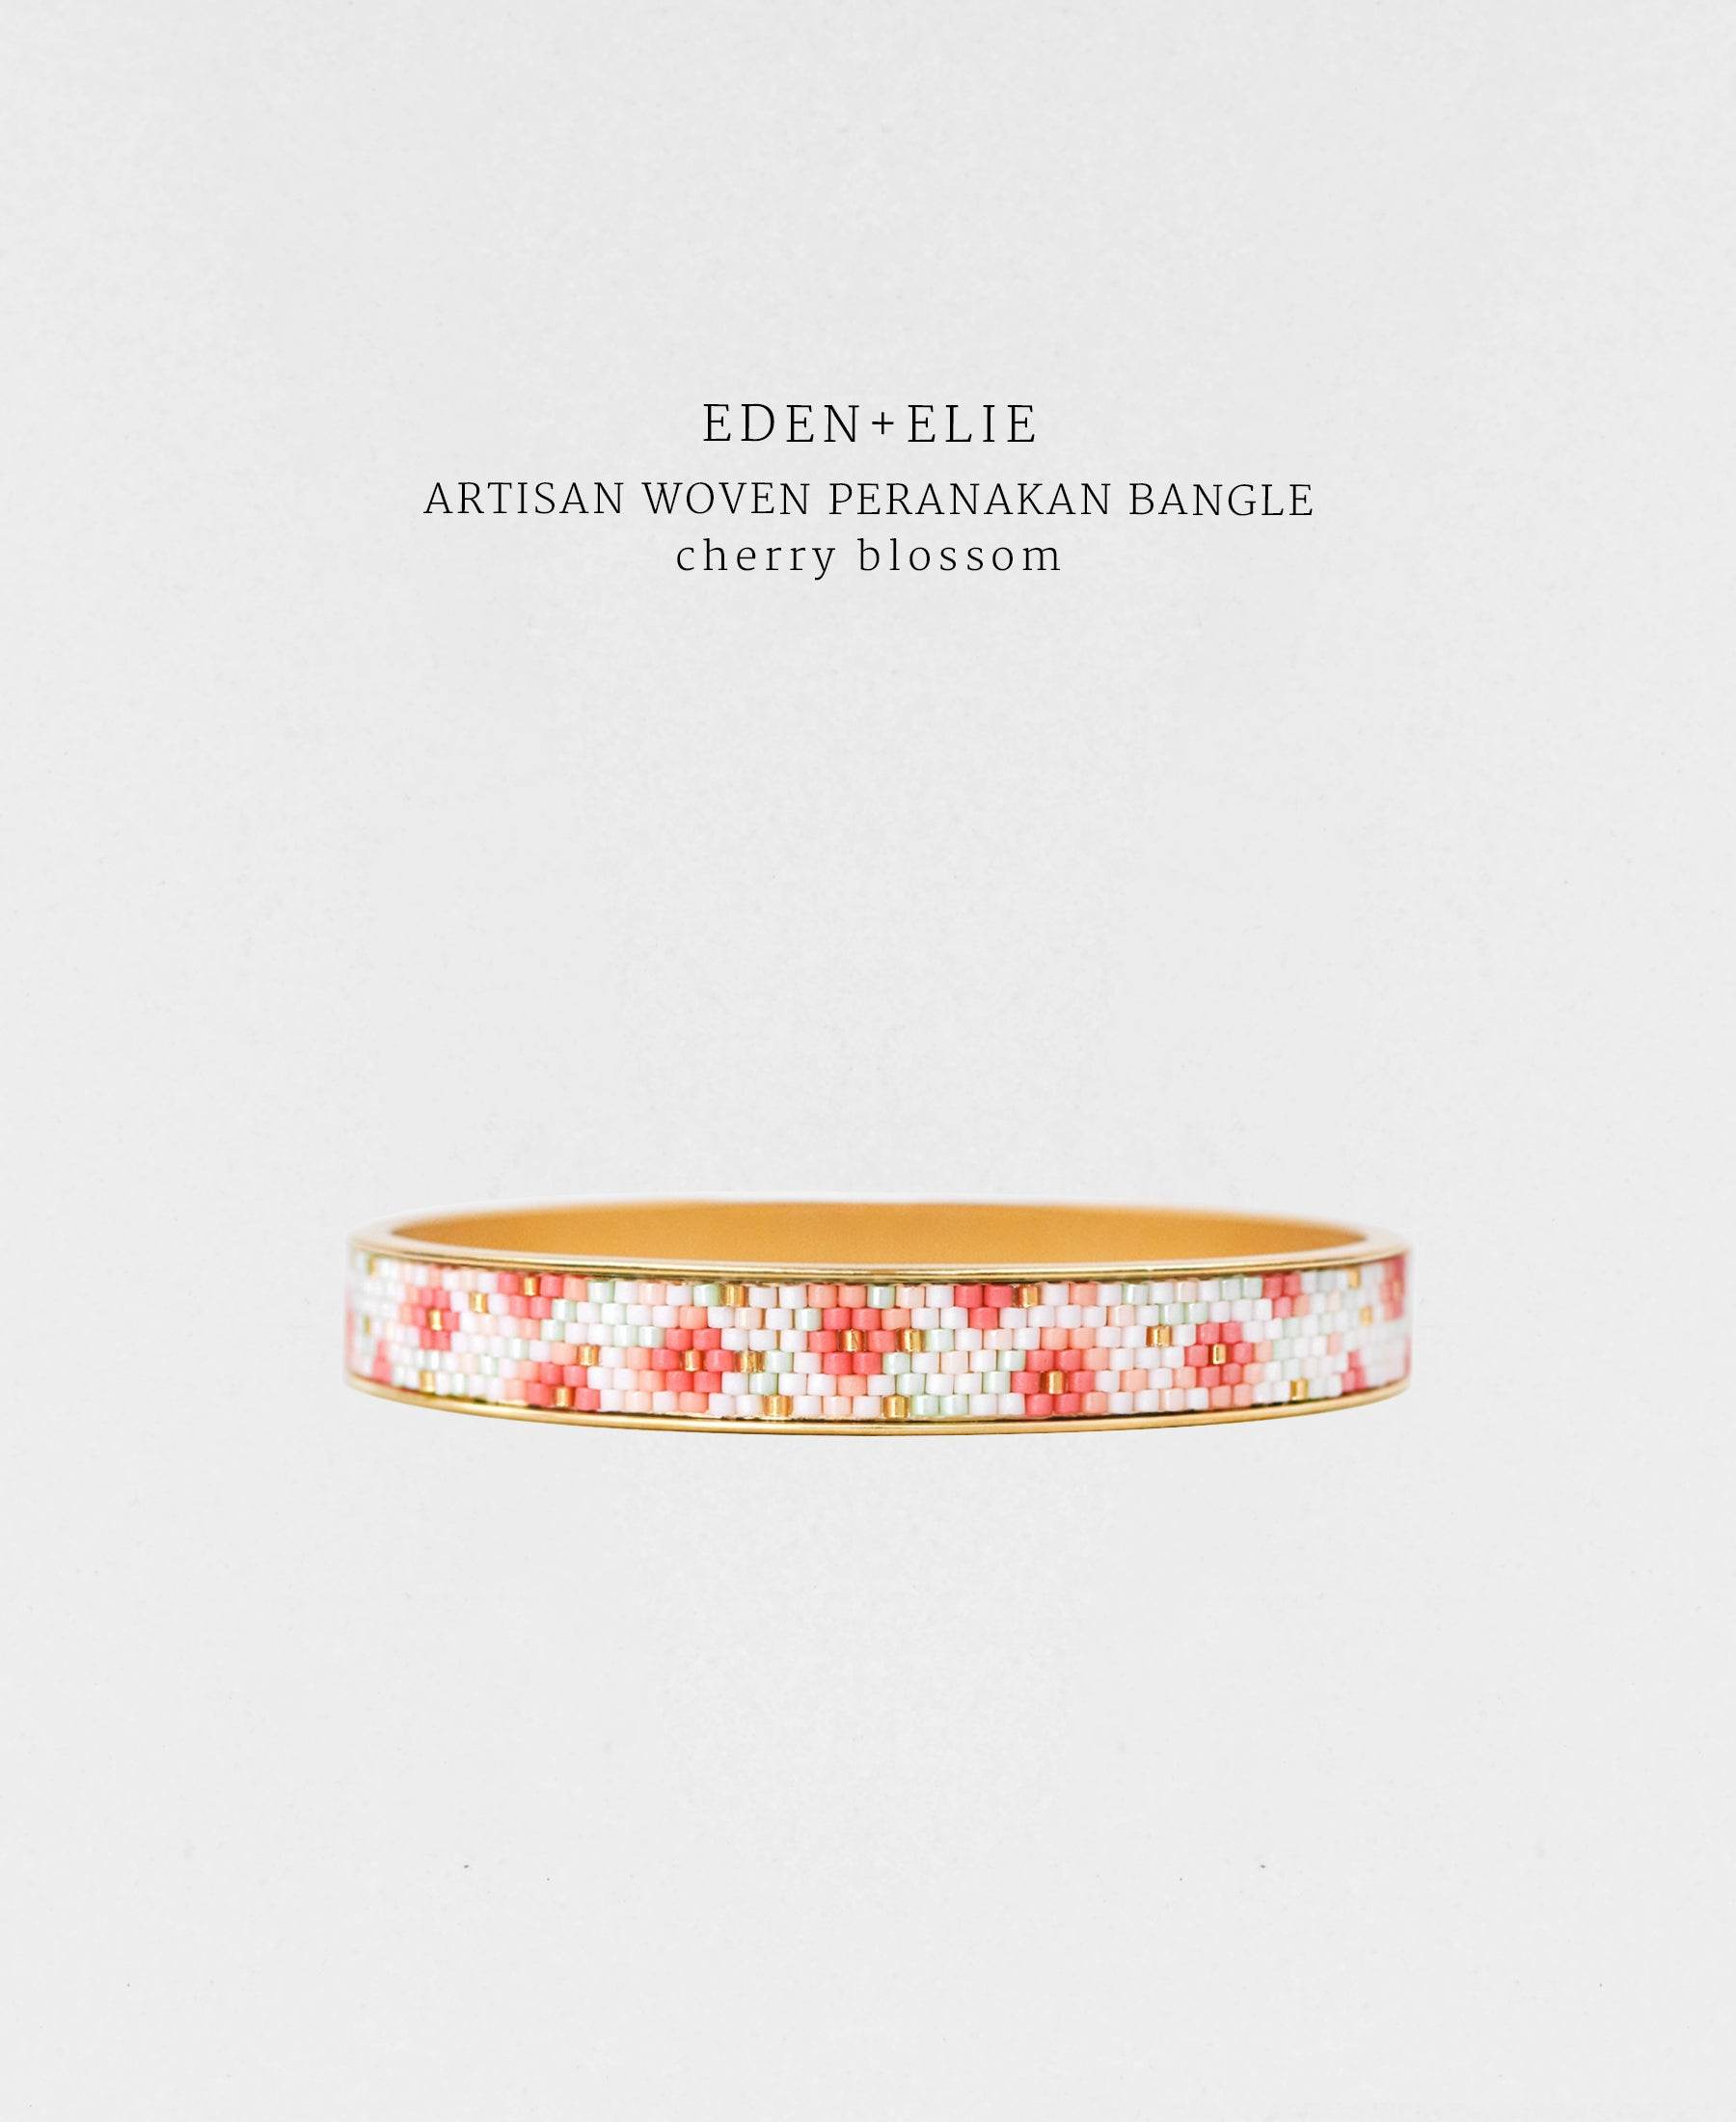 EDEN + ELIE Modern Peranakan gold narrow bangle - cherry blossom